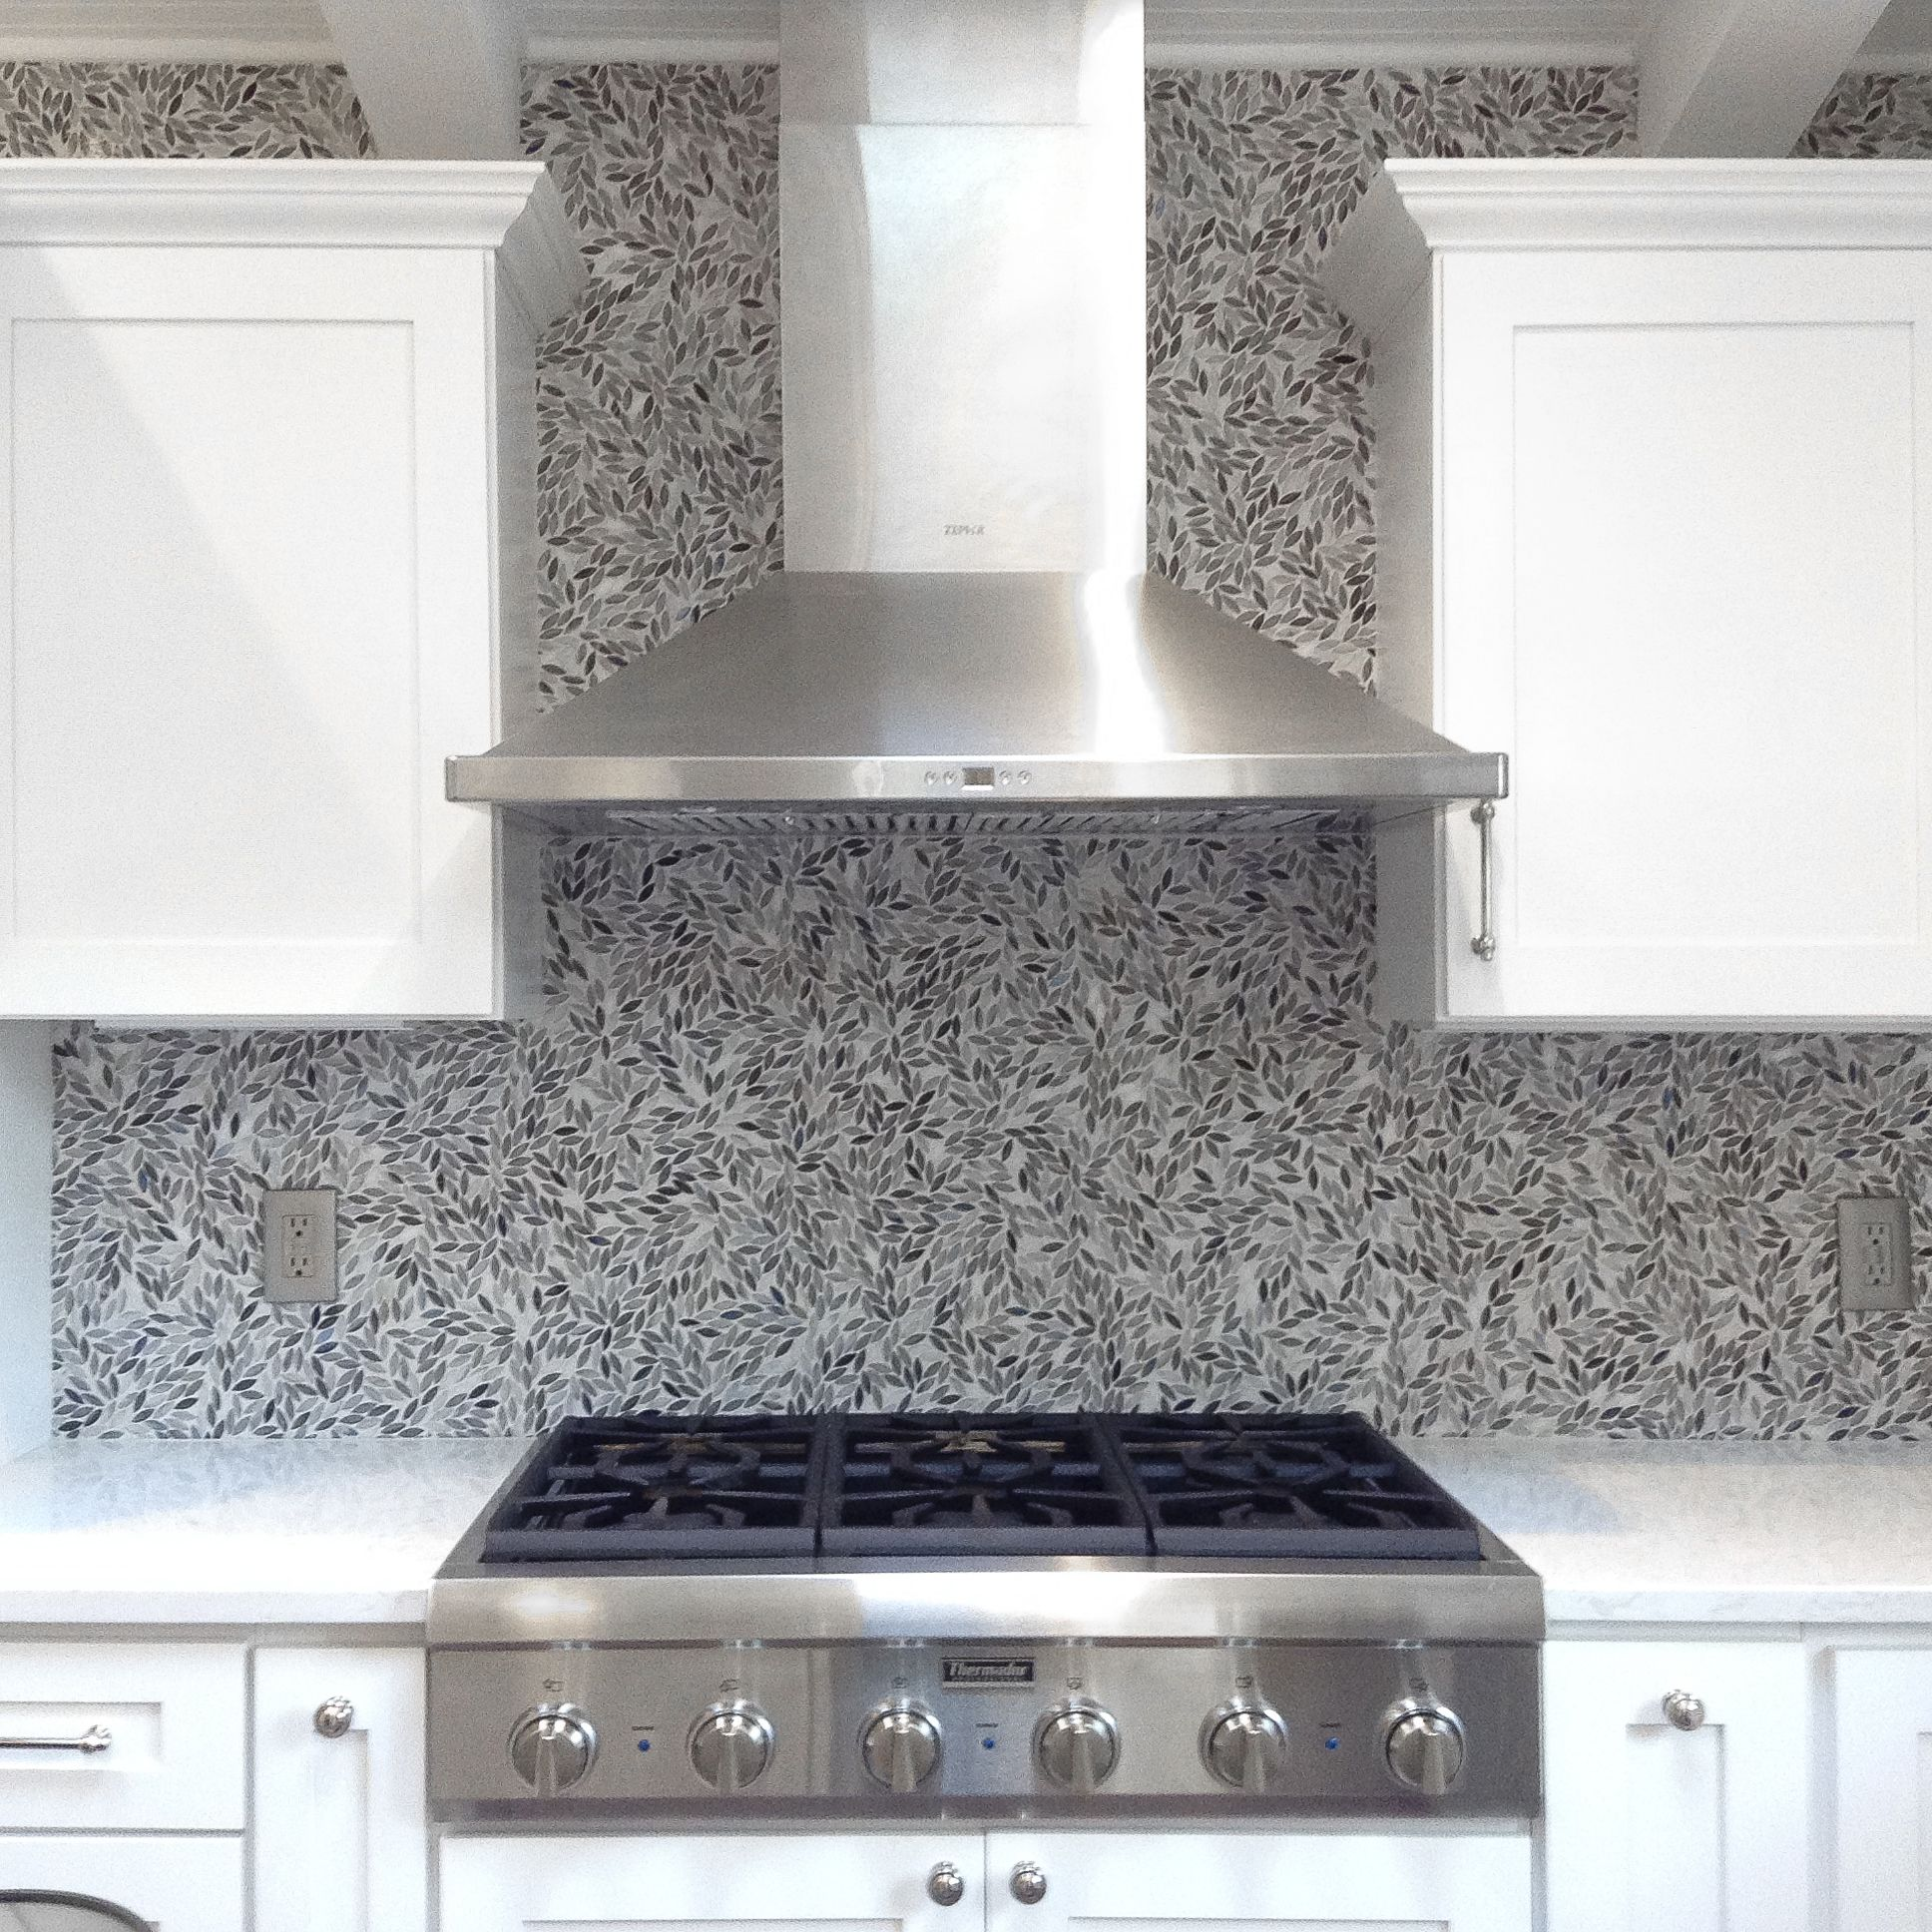 Artistic Tile I This Charming Yonkers Kitchen Takes On A Windswept Look With Our Hand Crafted Stained Glass Desi Artistic Tile Eclectic Kitchen Tile Backsplash